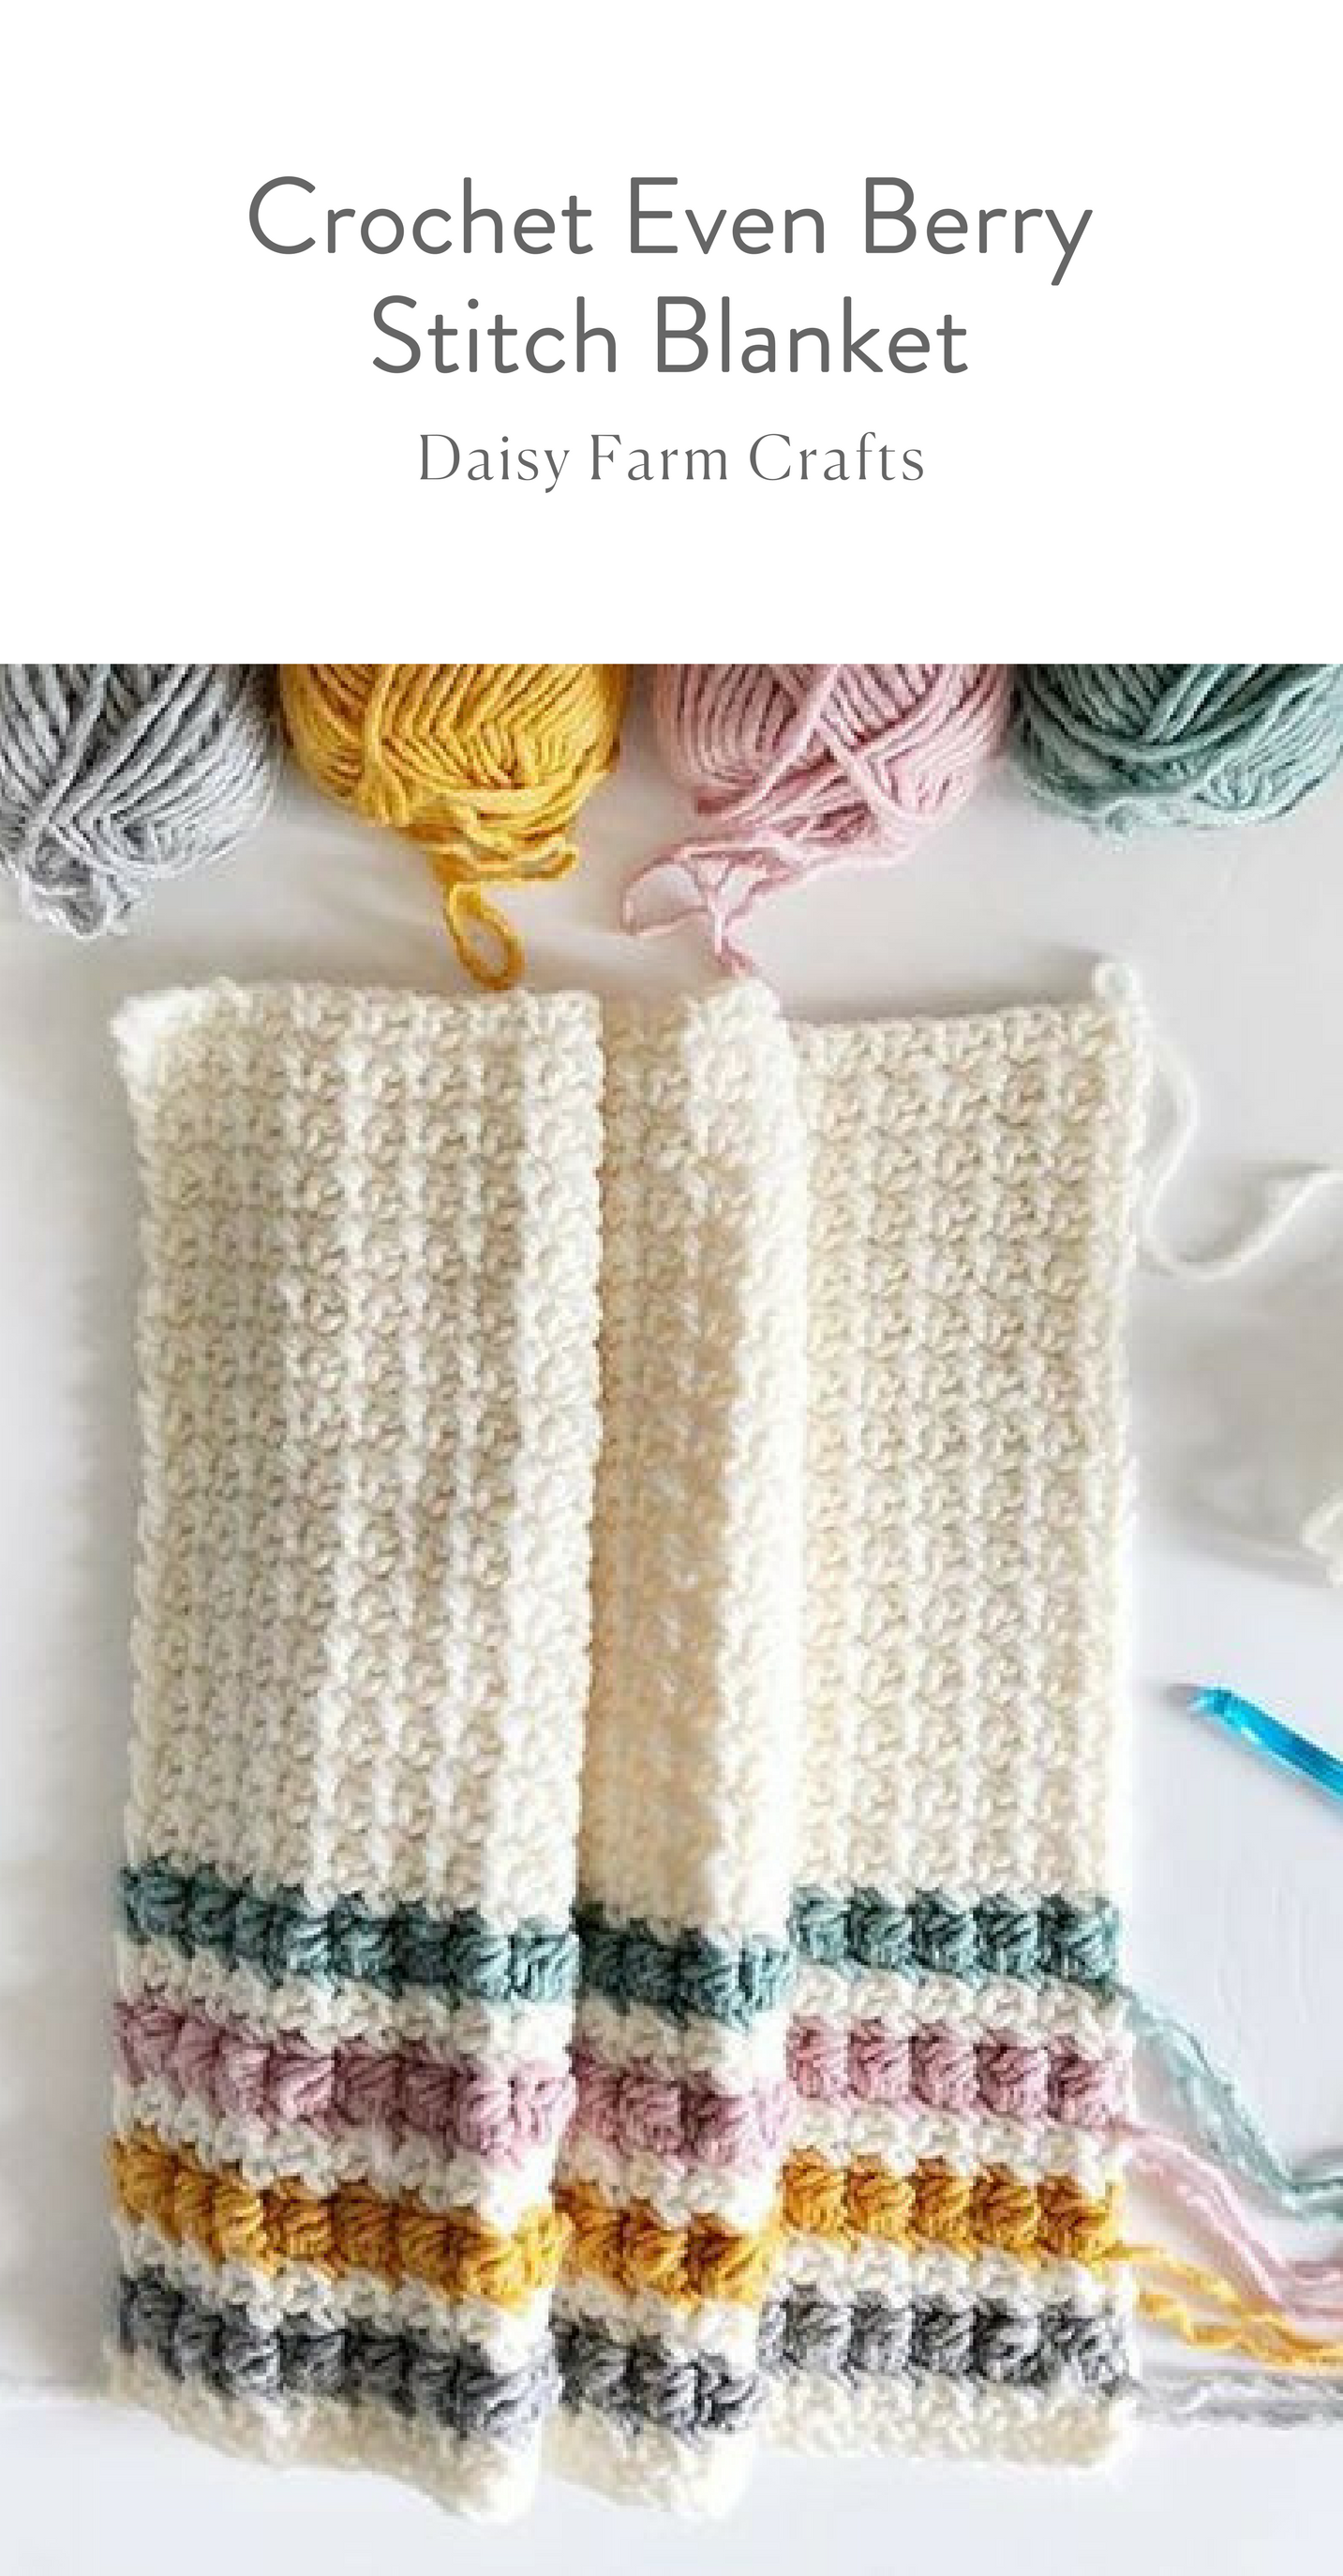 Free Pattern - Crochet Even Berry Stitch Blanket | Afghans ...